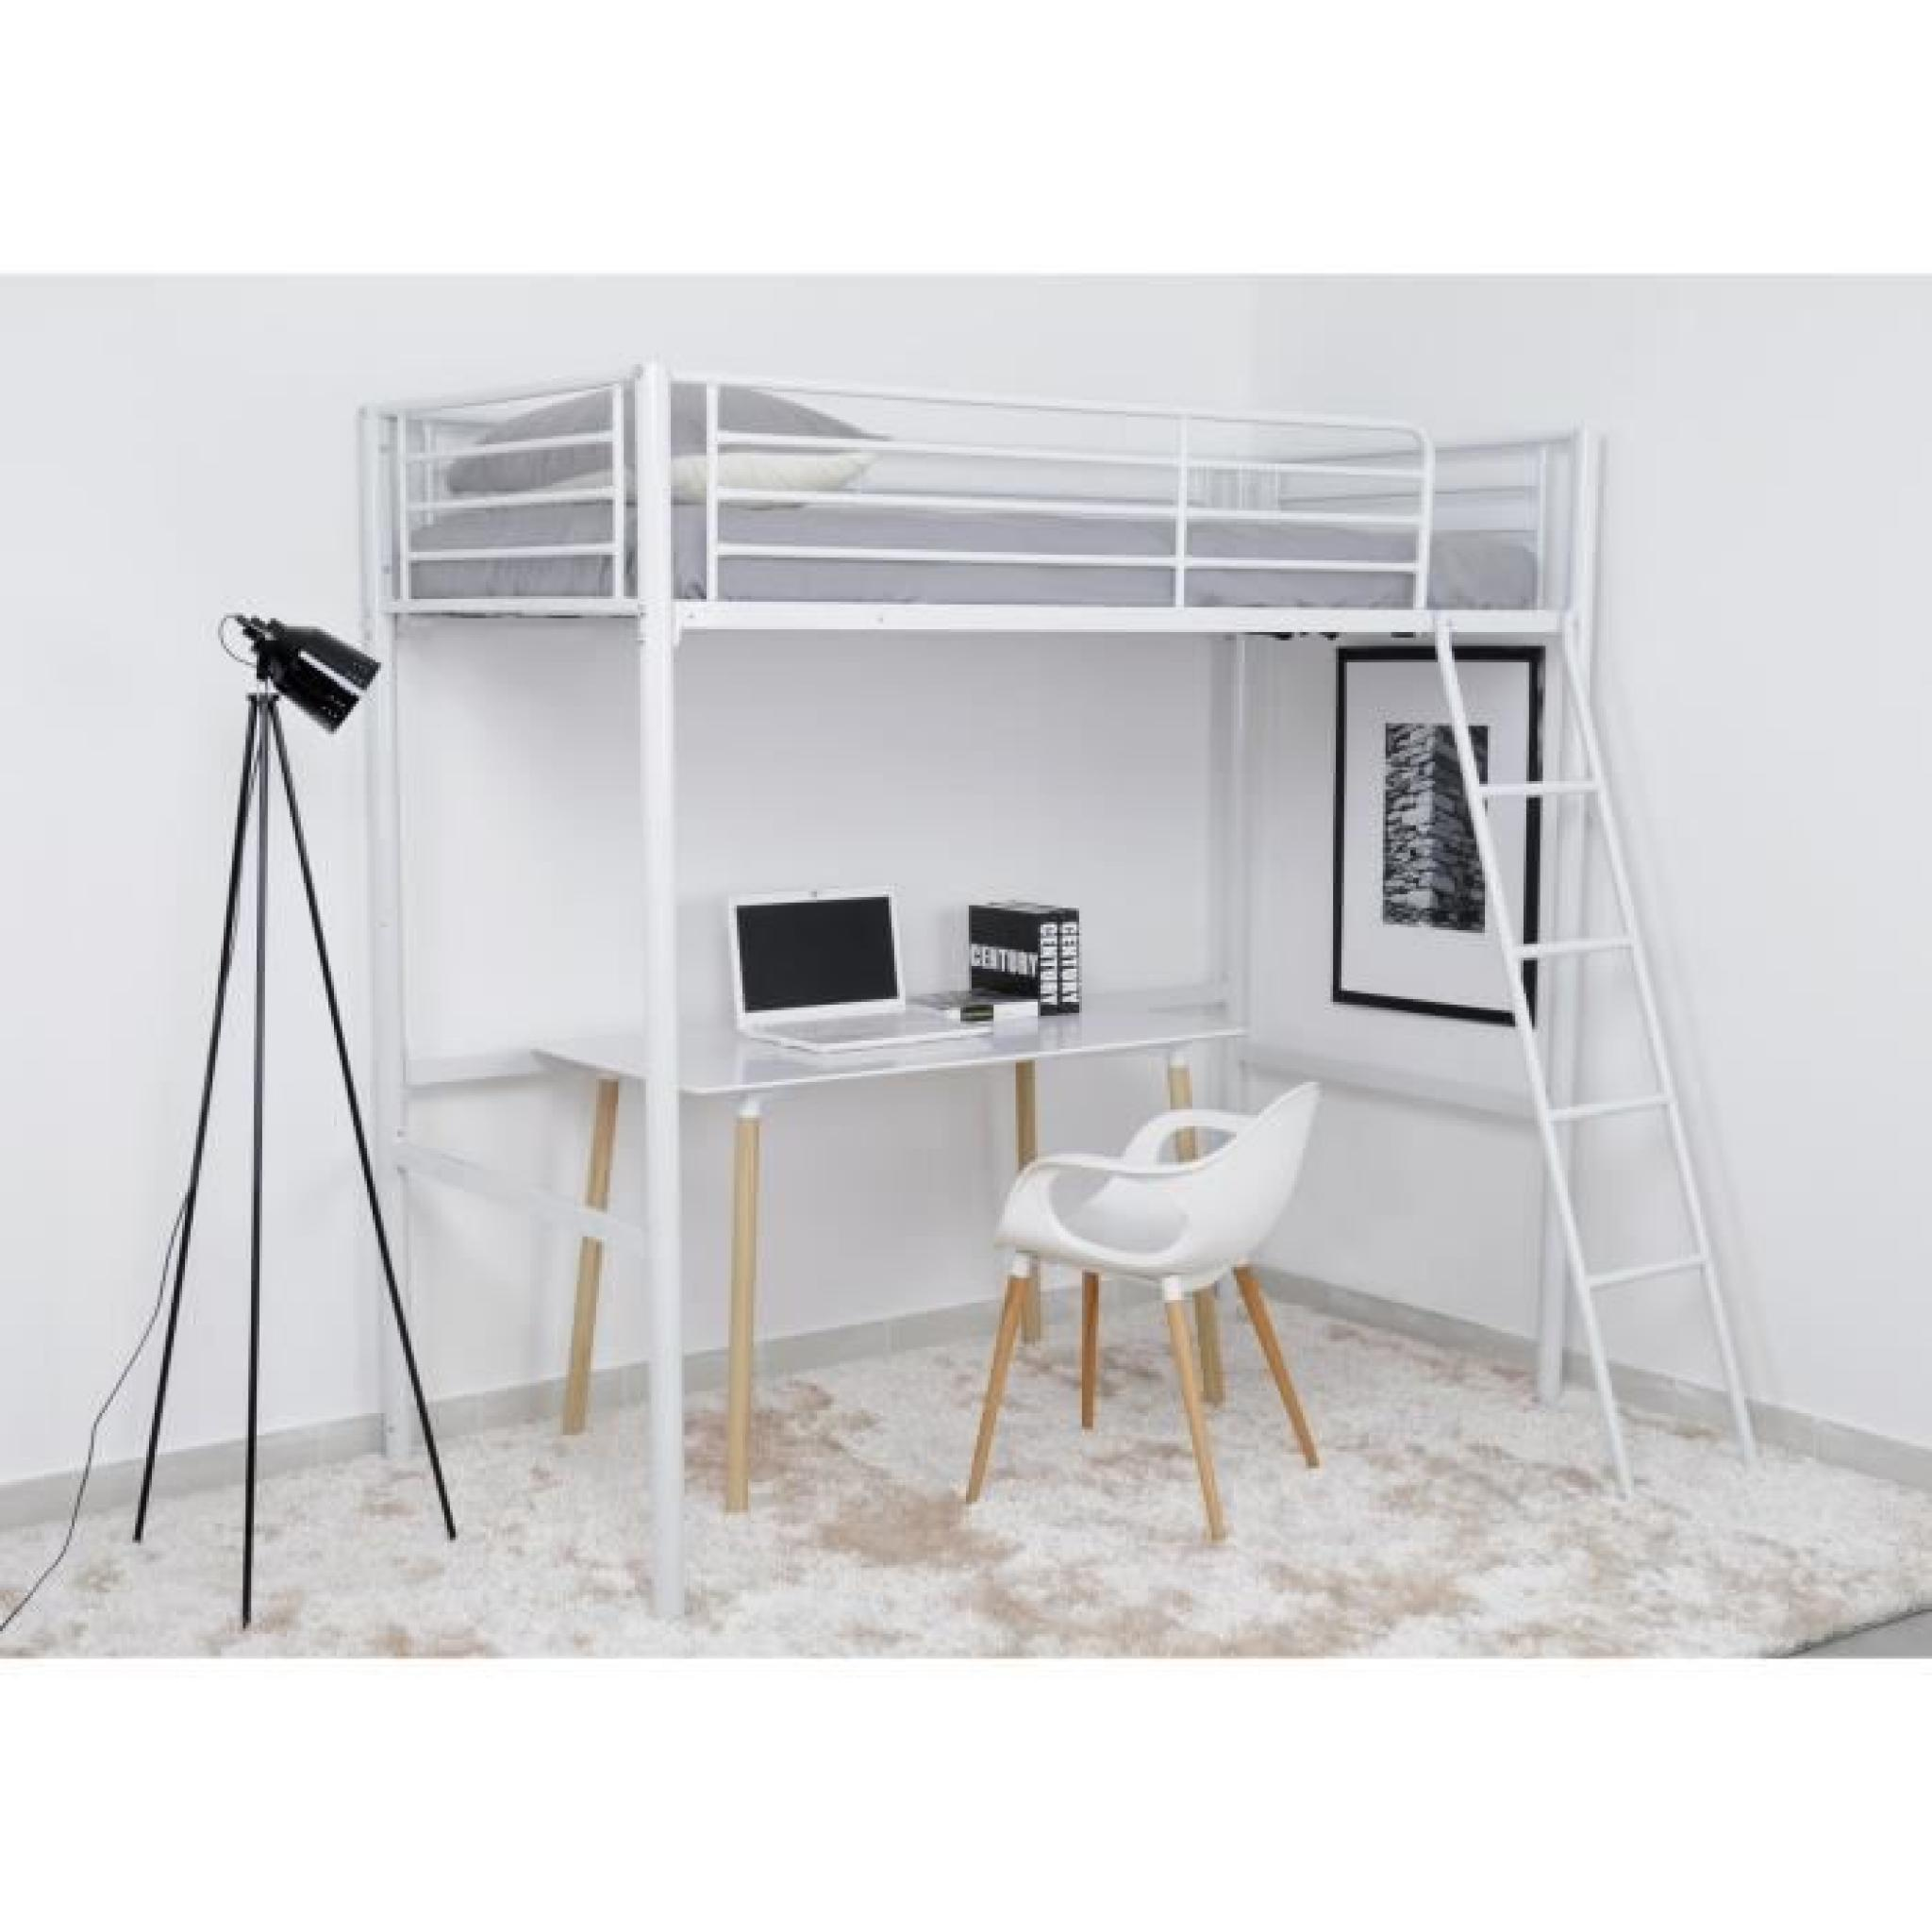 finlandek lit mezzanine adulte 90x190 cm m tal blanc leijona achat vente lit superpose pas. Black Bedroom Furniture Sets. Home Design Ideas